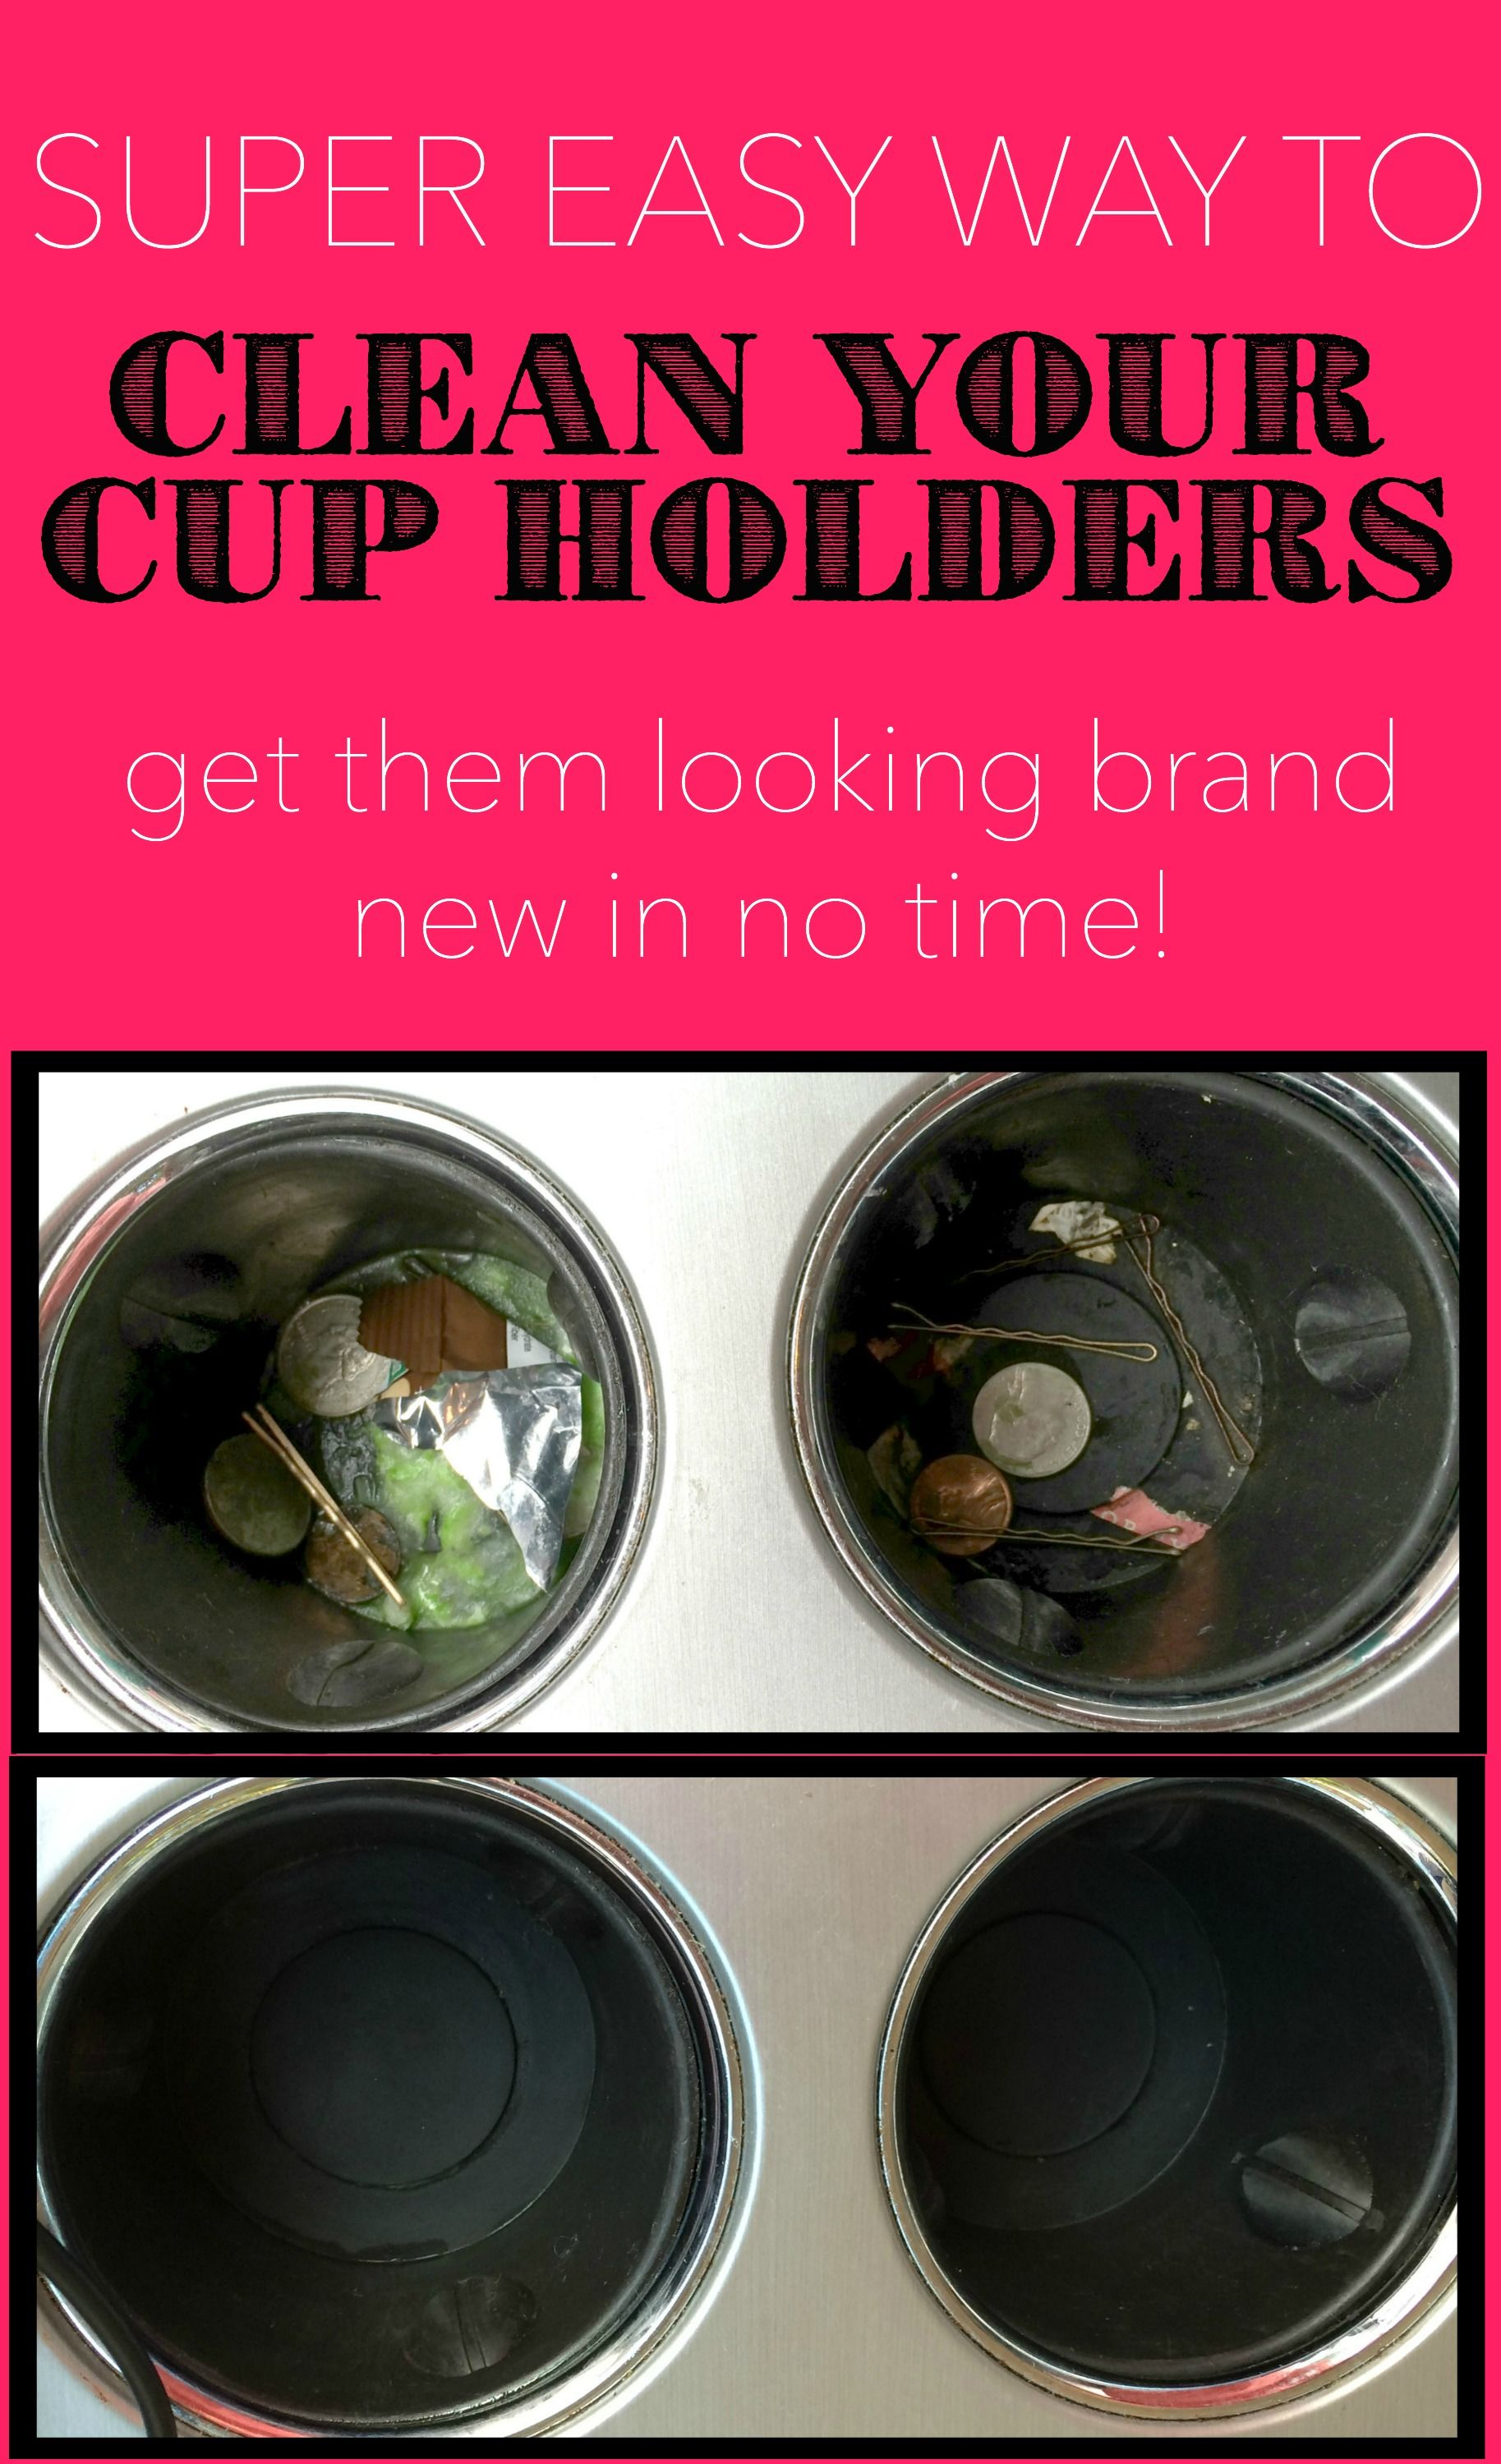 Get the gunk out of your cupholders with these easy cleaning tips